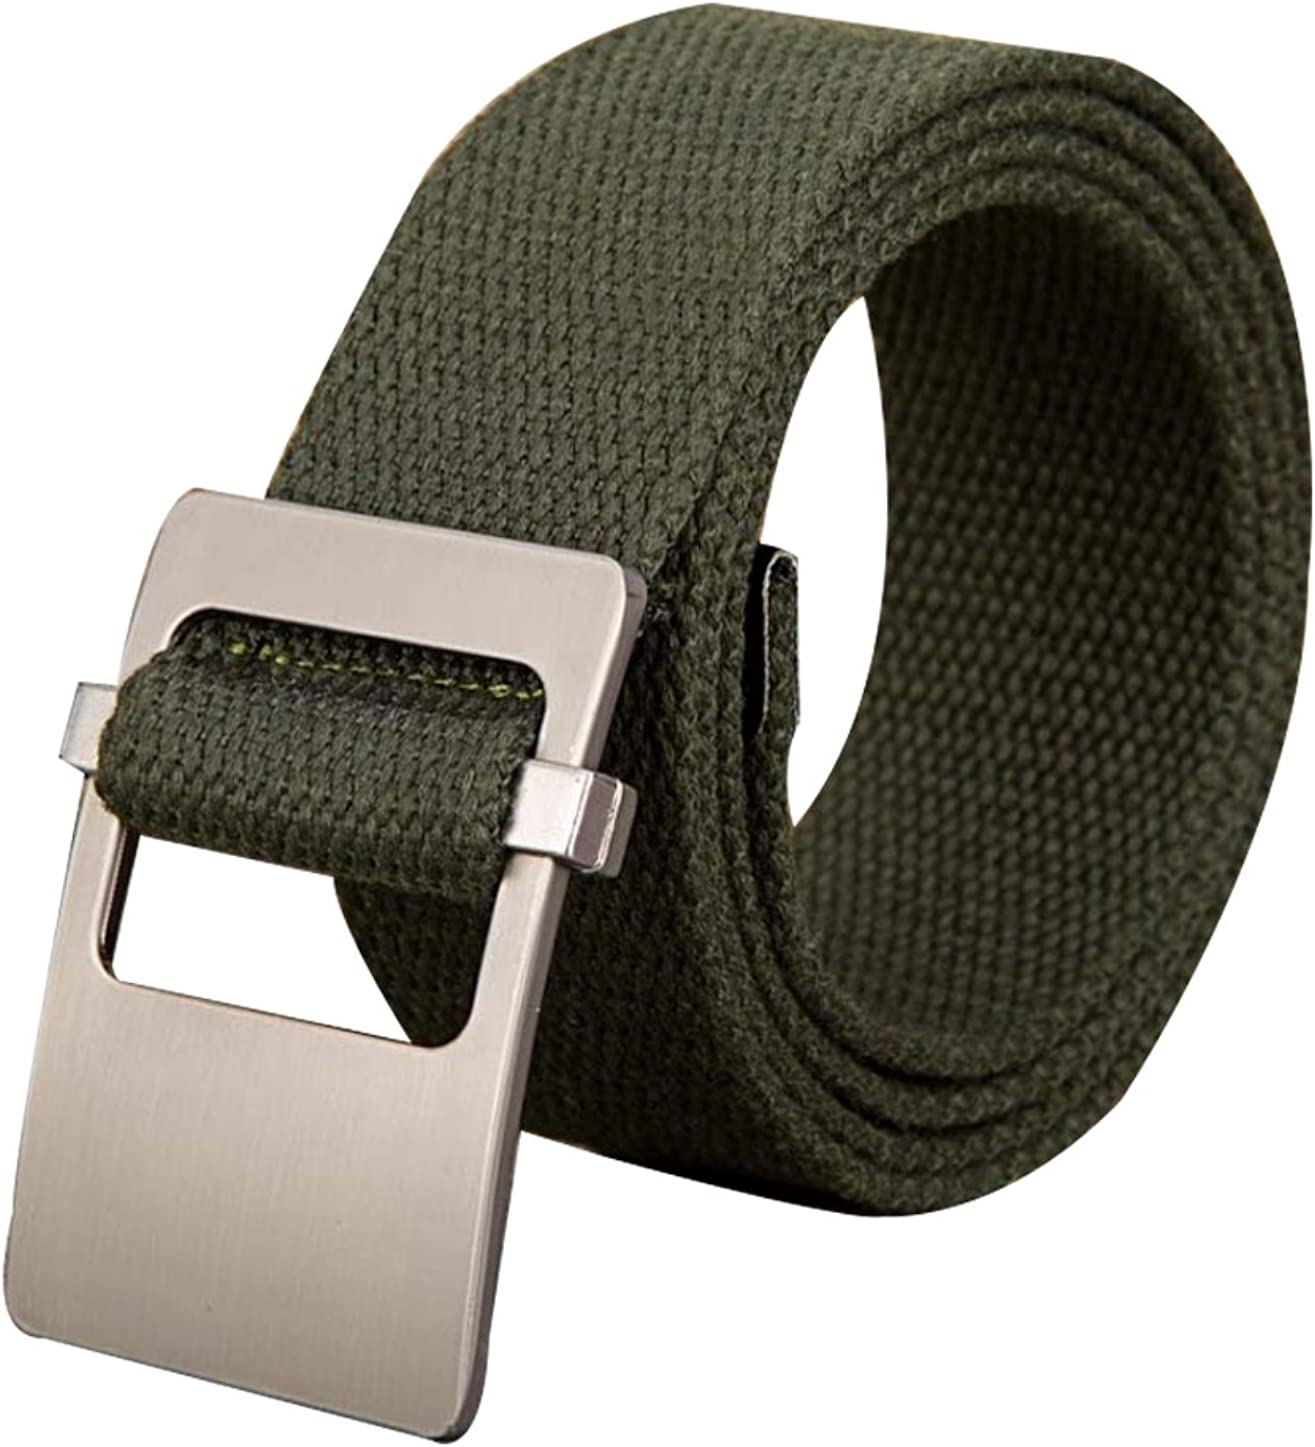 "KHAKI CANVAS MILITARY BELT WITH GOLD SLIDE BUCKLE 52"" TOTAL LENGTH NEW"